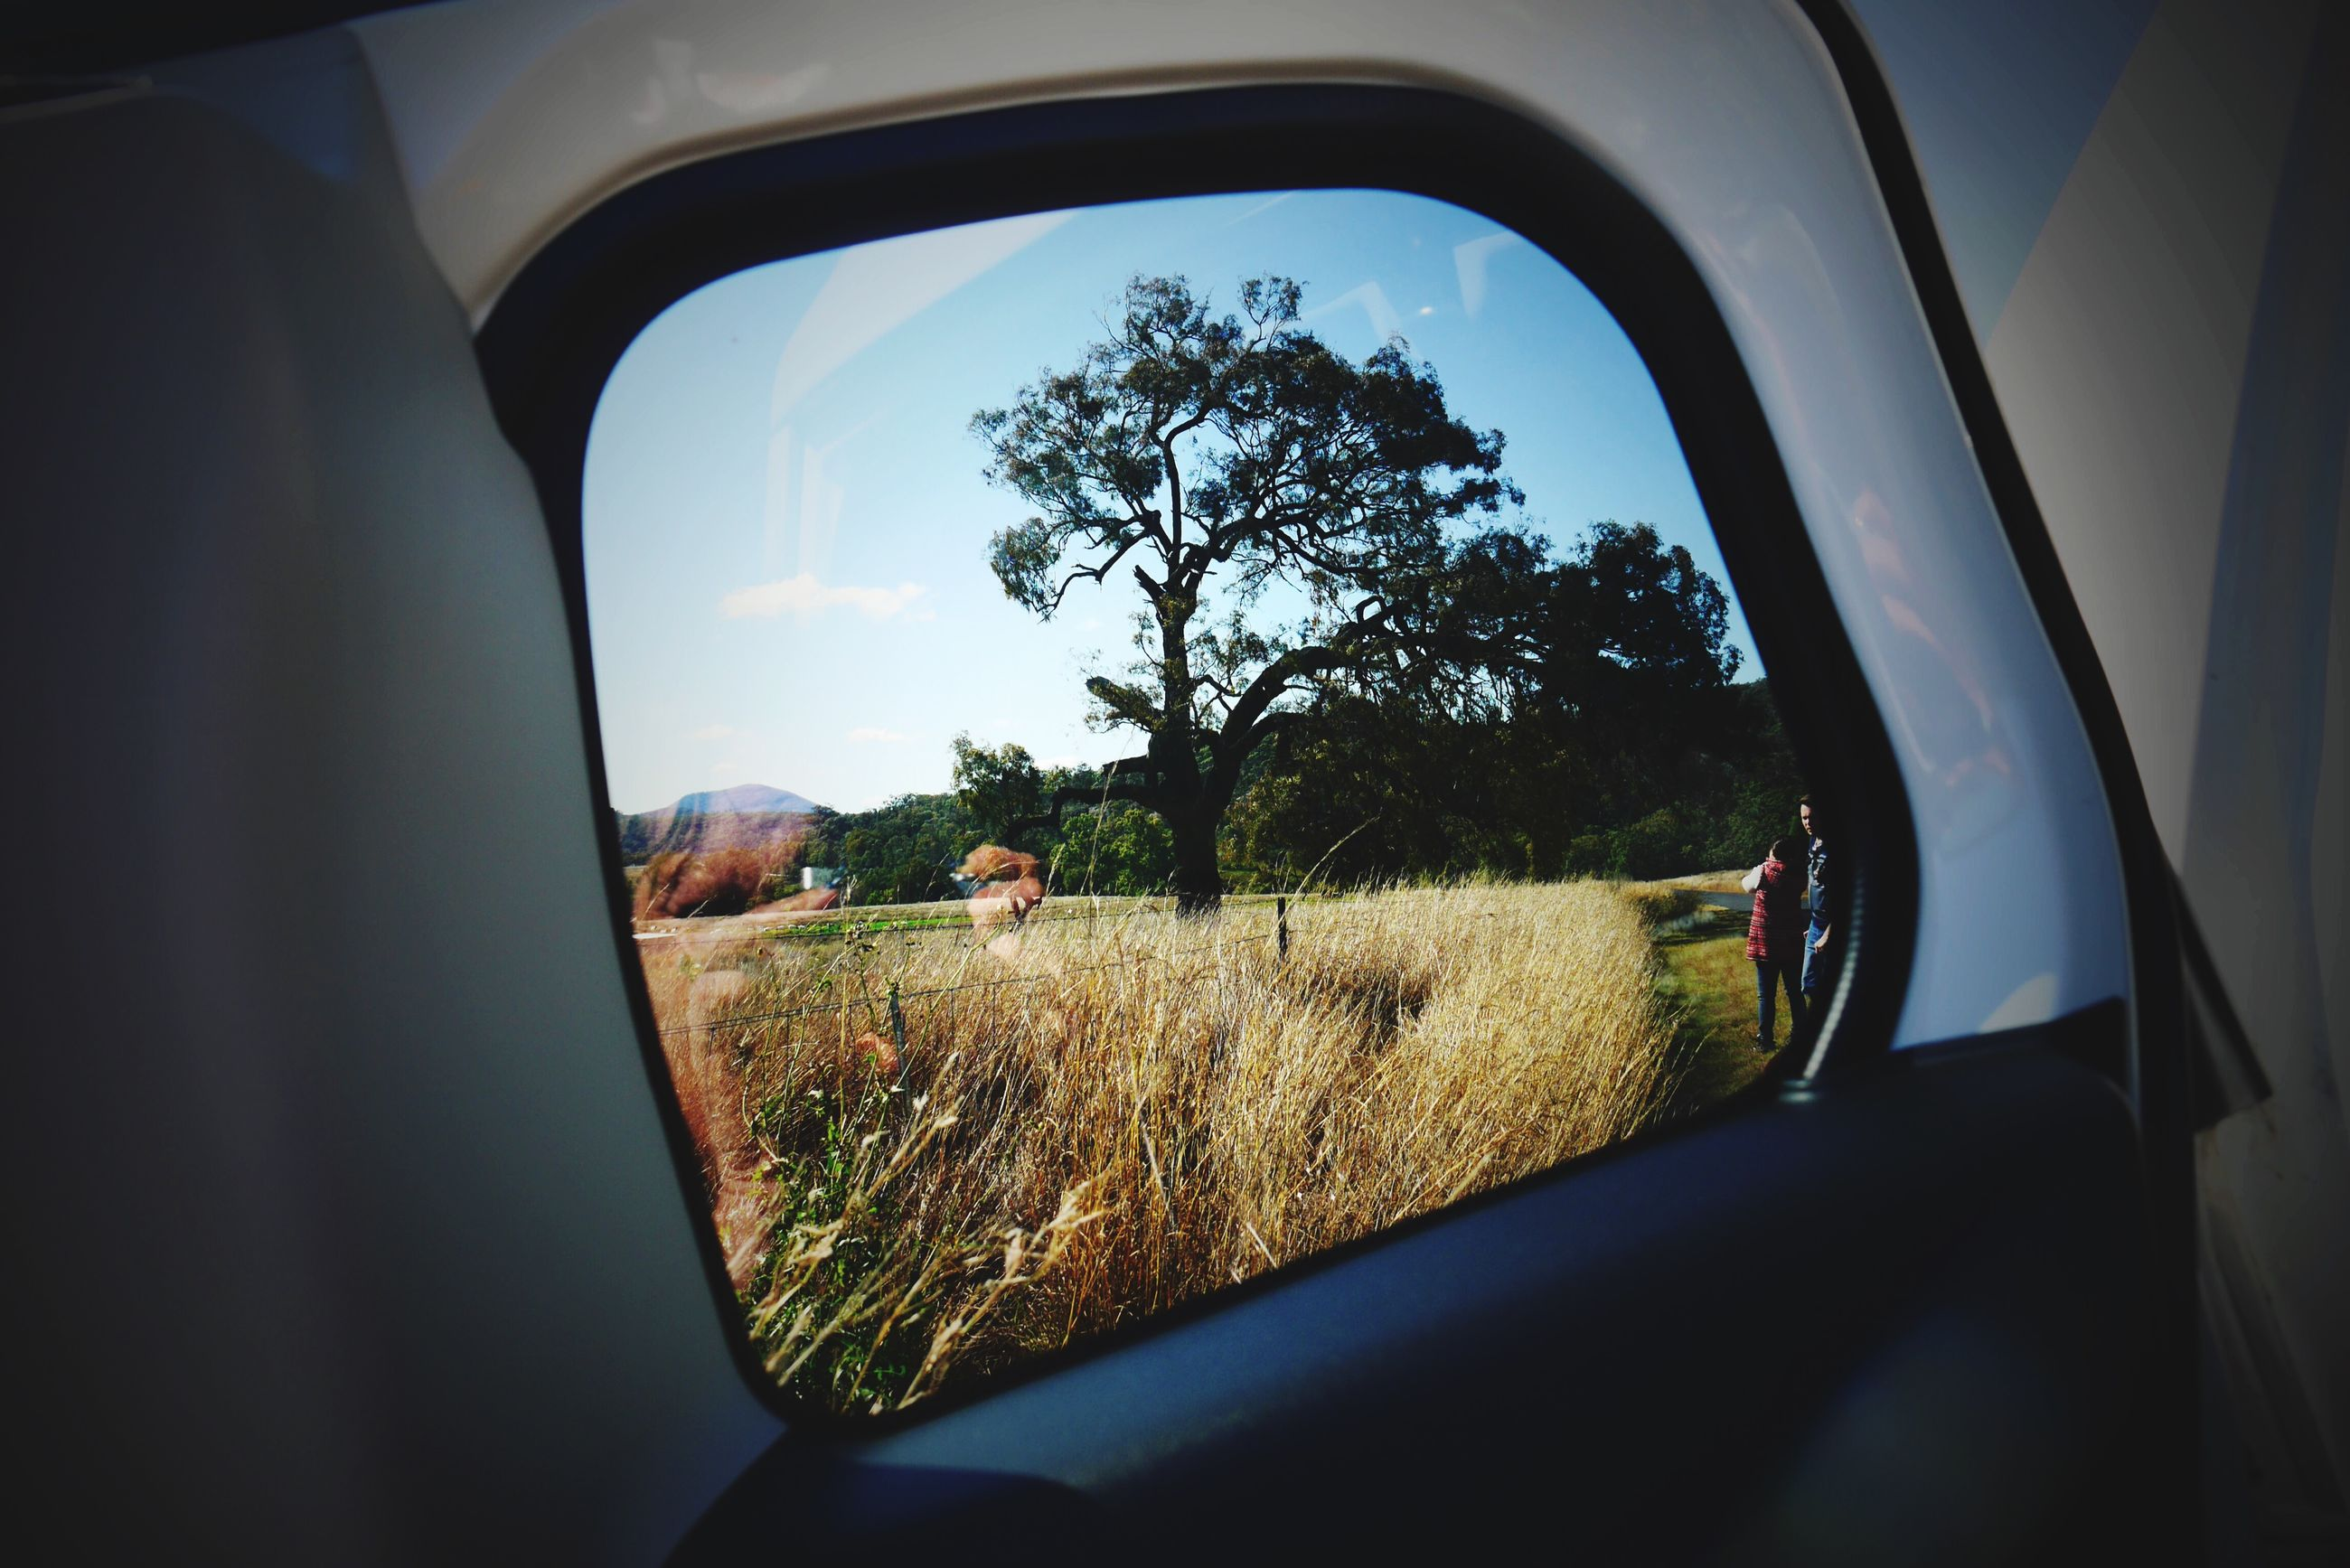 transportation, vehicle interior, mode of transport, land vehicle, window, car, tree, glass - material, transparent, side-view mirror, car interior, sky, reflection, landscape, field, windshield, part of, travel, indoors, road